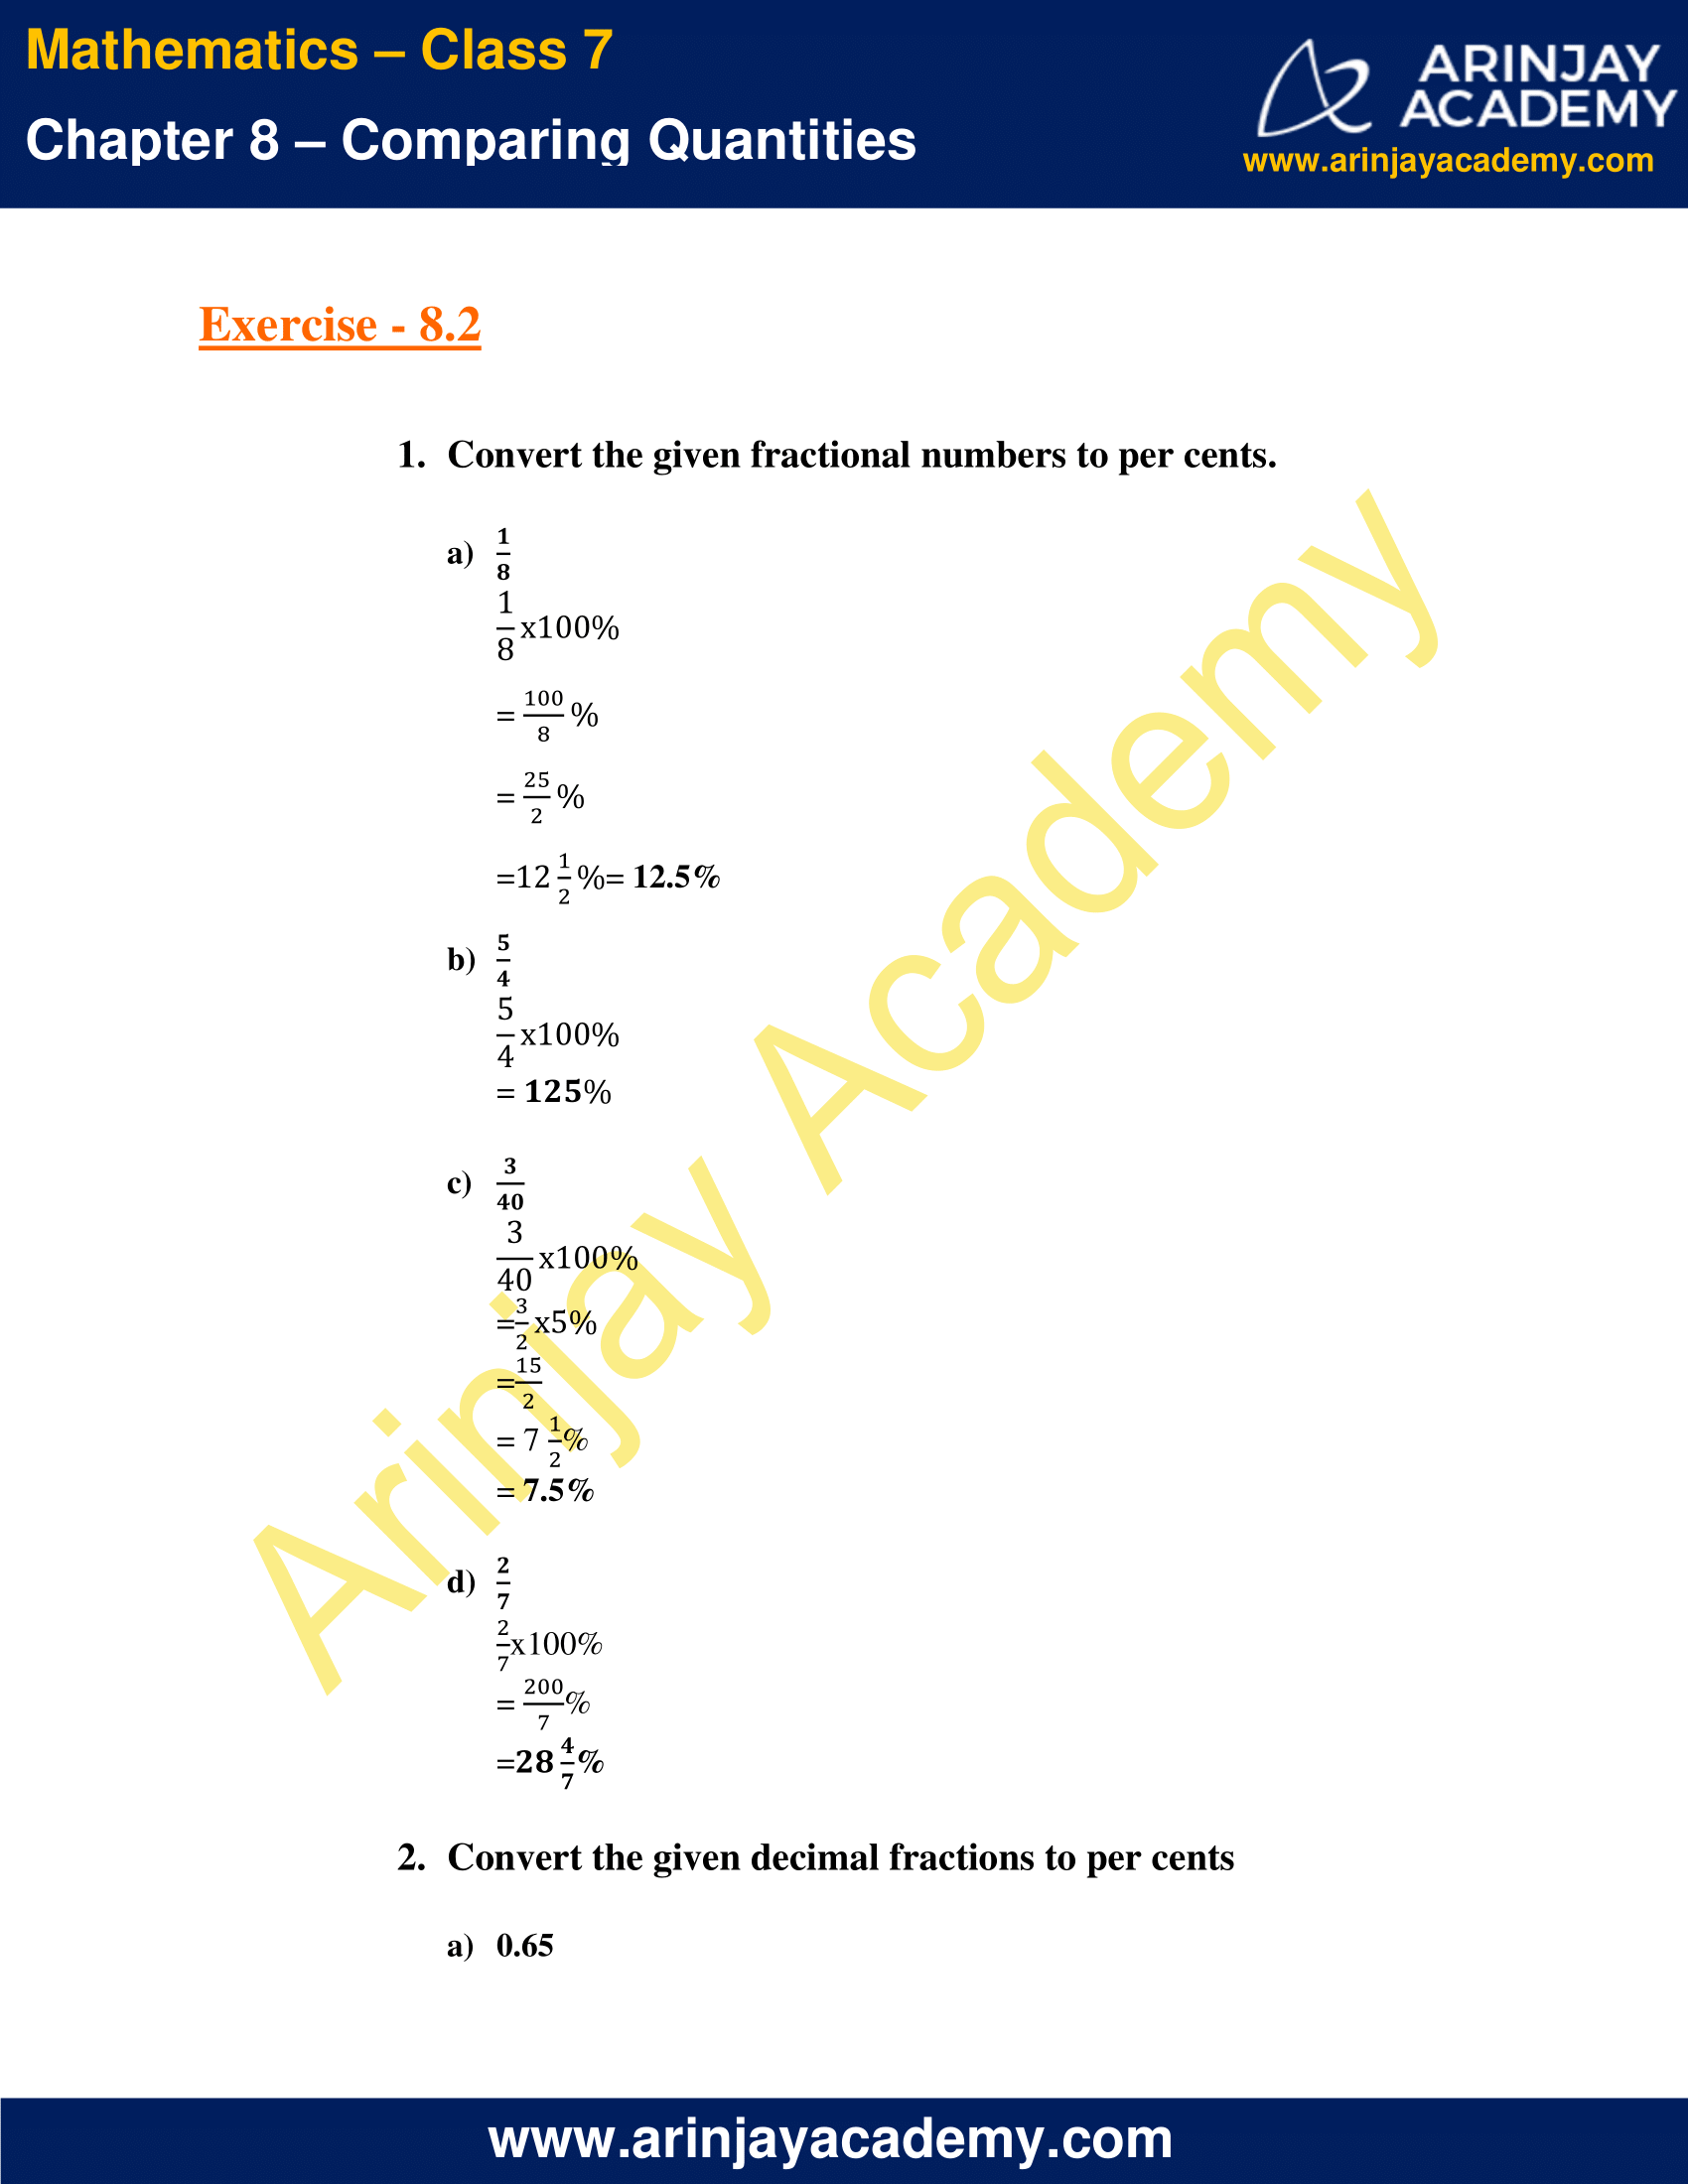 NCERT Solutions for Class 7 Maths Chapter 8 Exercise 8.2 image 1